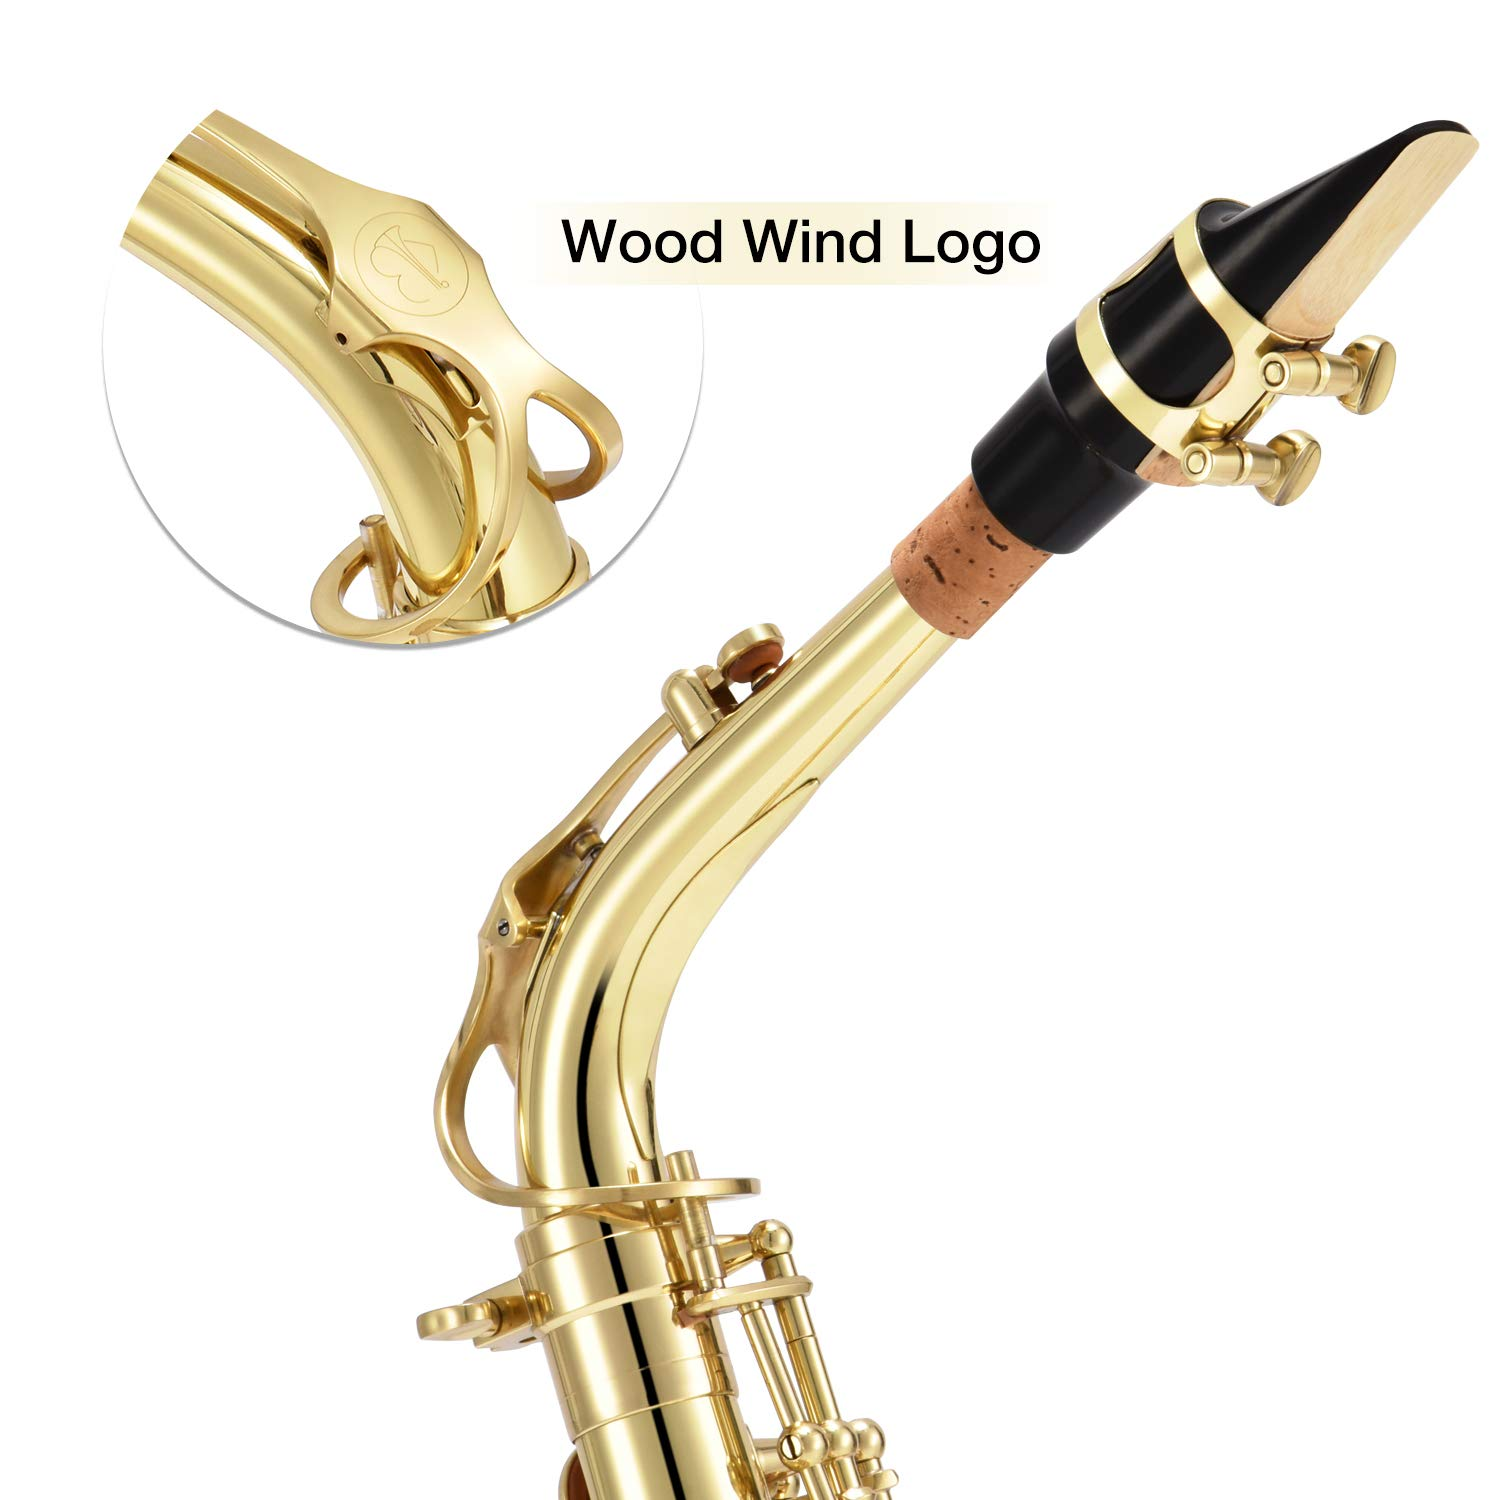 Eastar AS-Ⅱ Student Alto Saxophone E Flat Gold Lacquer Alto Sax Full Kit With Carrying Sax Case Mouthpiece Straps Reeds Stand Cork Grease by Eastar (Image #4)